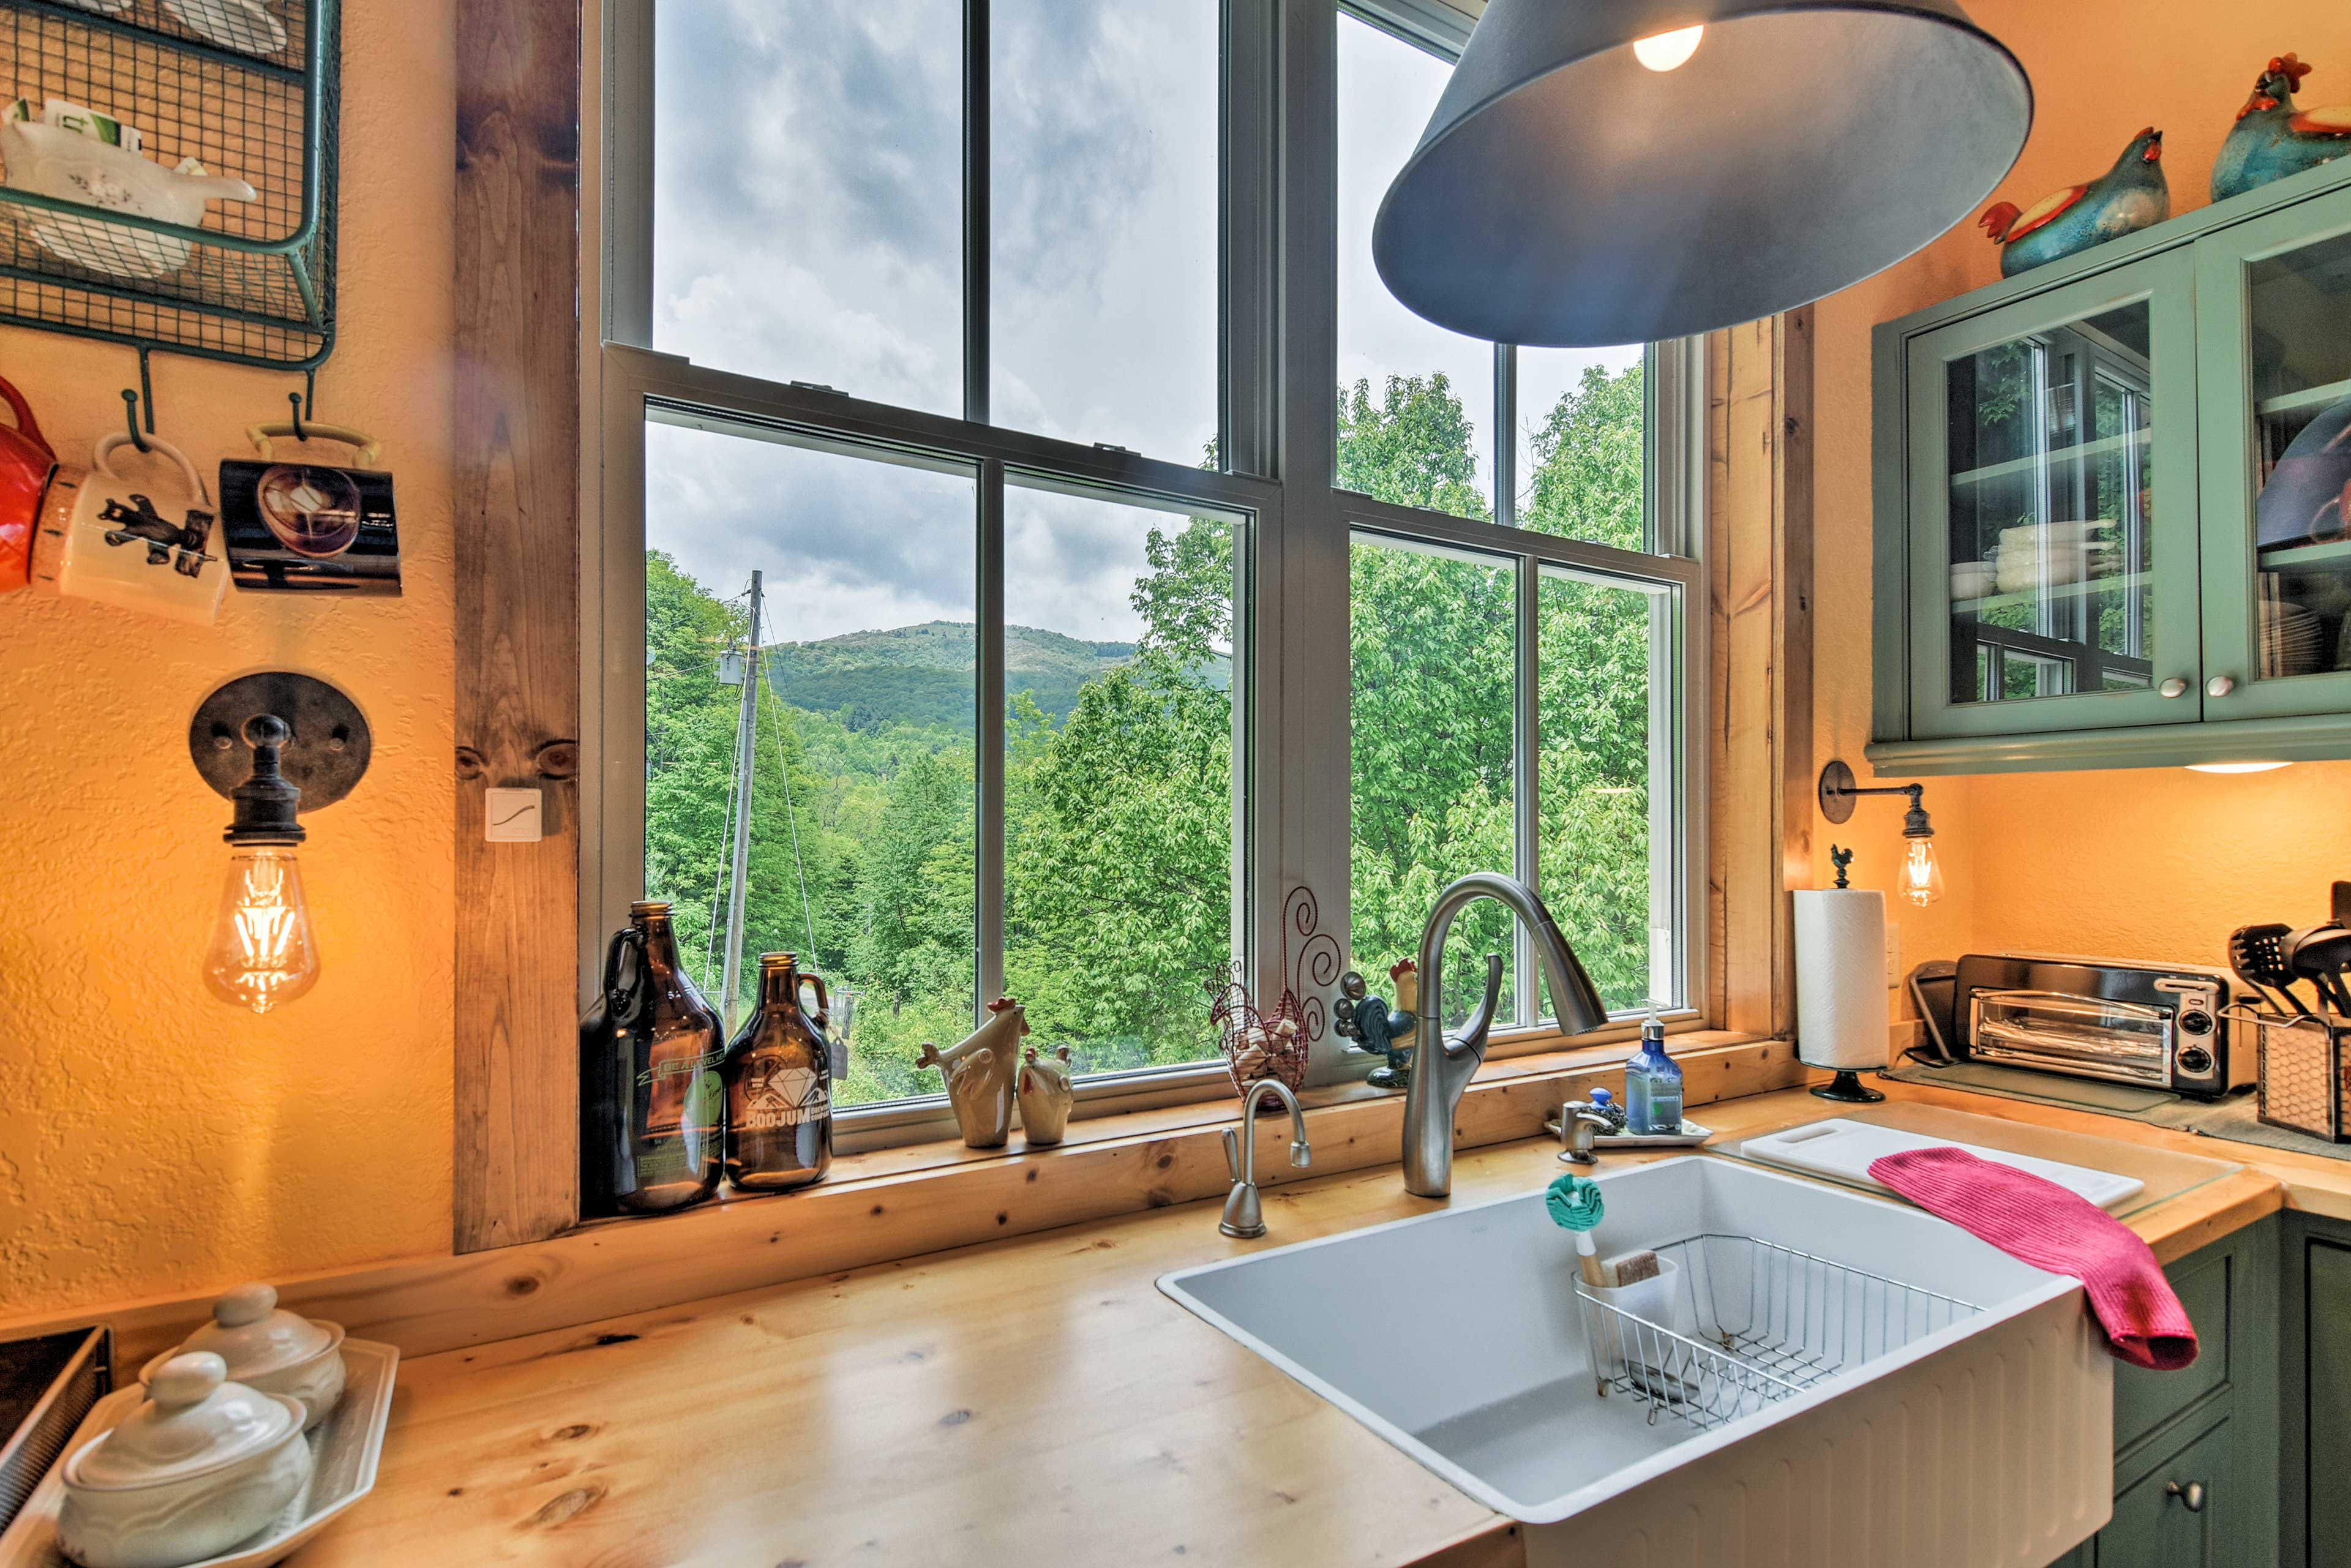 You'll find the kitchen chock-full of dishware, cookware, & other amenities.